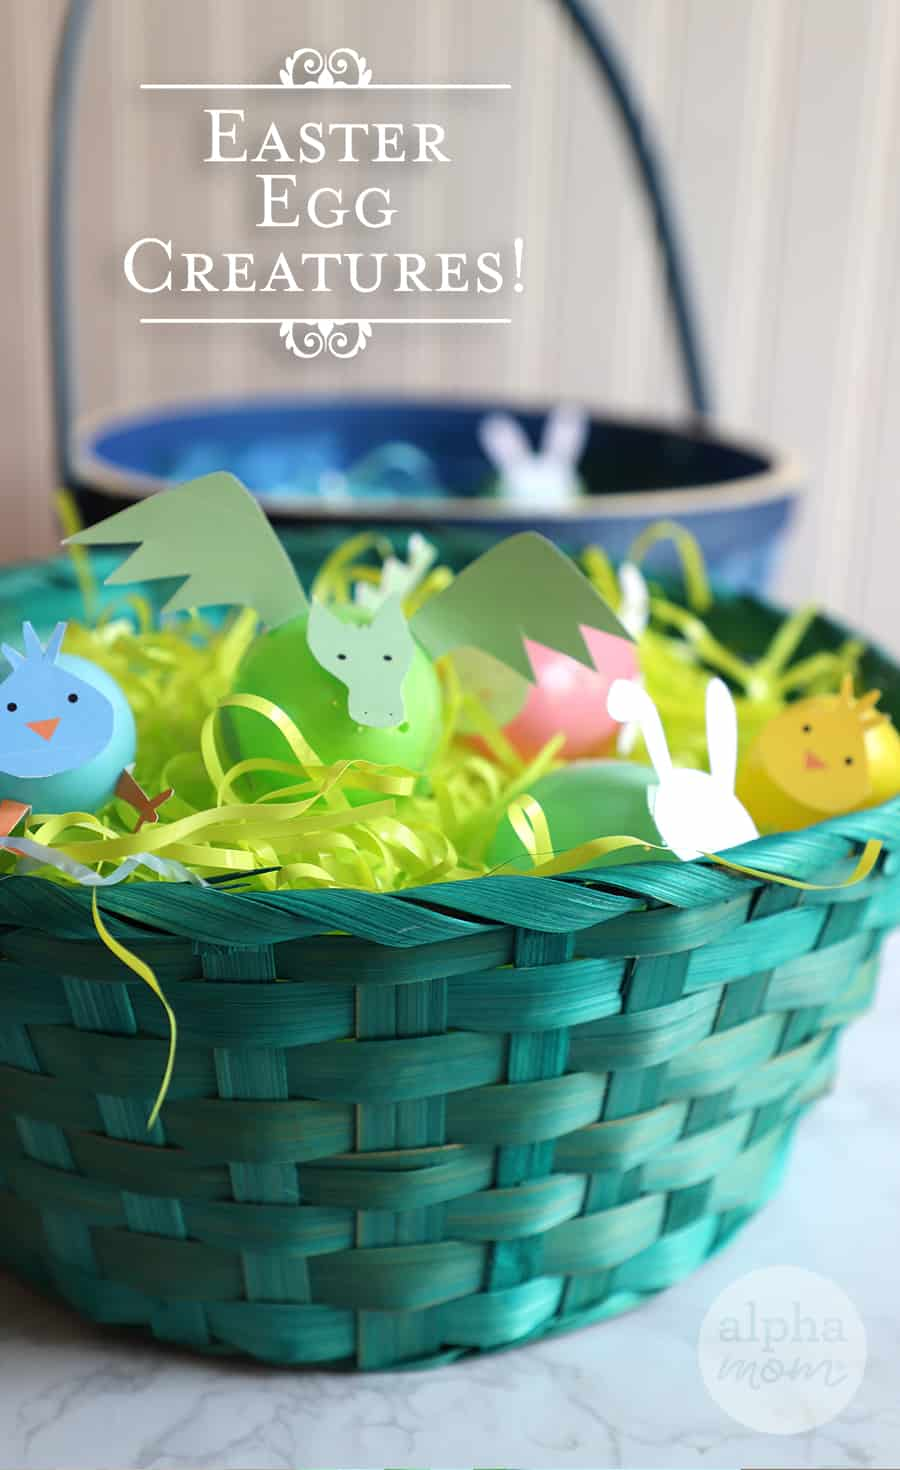 Plastic eggs transformed into little creatures in a basket for Easter